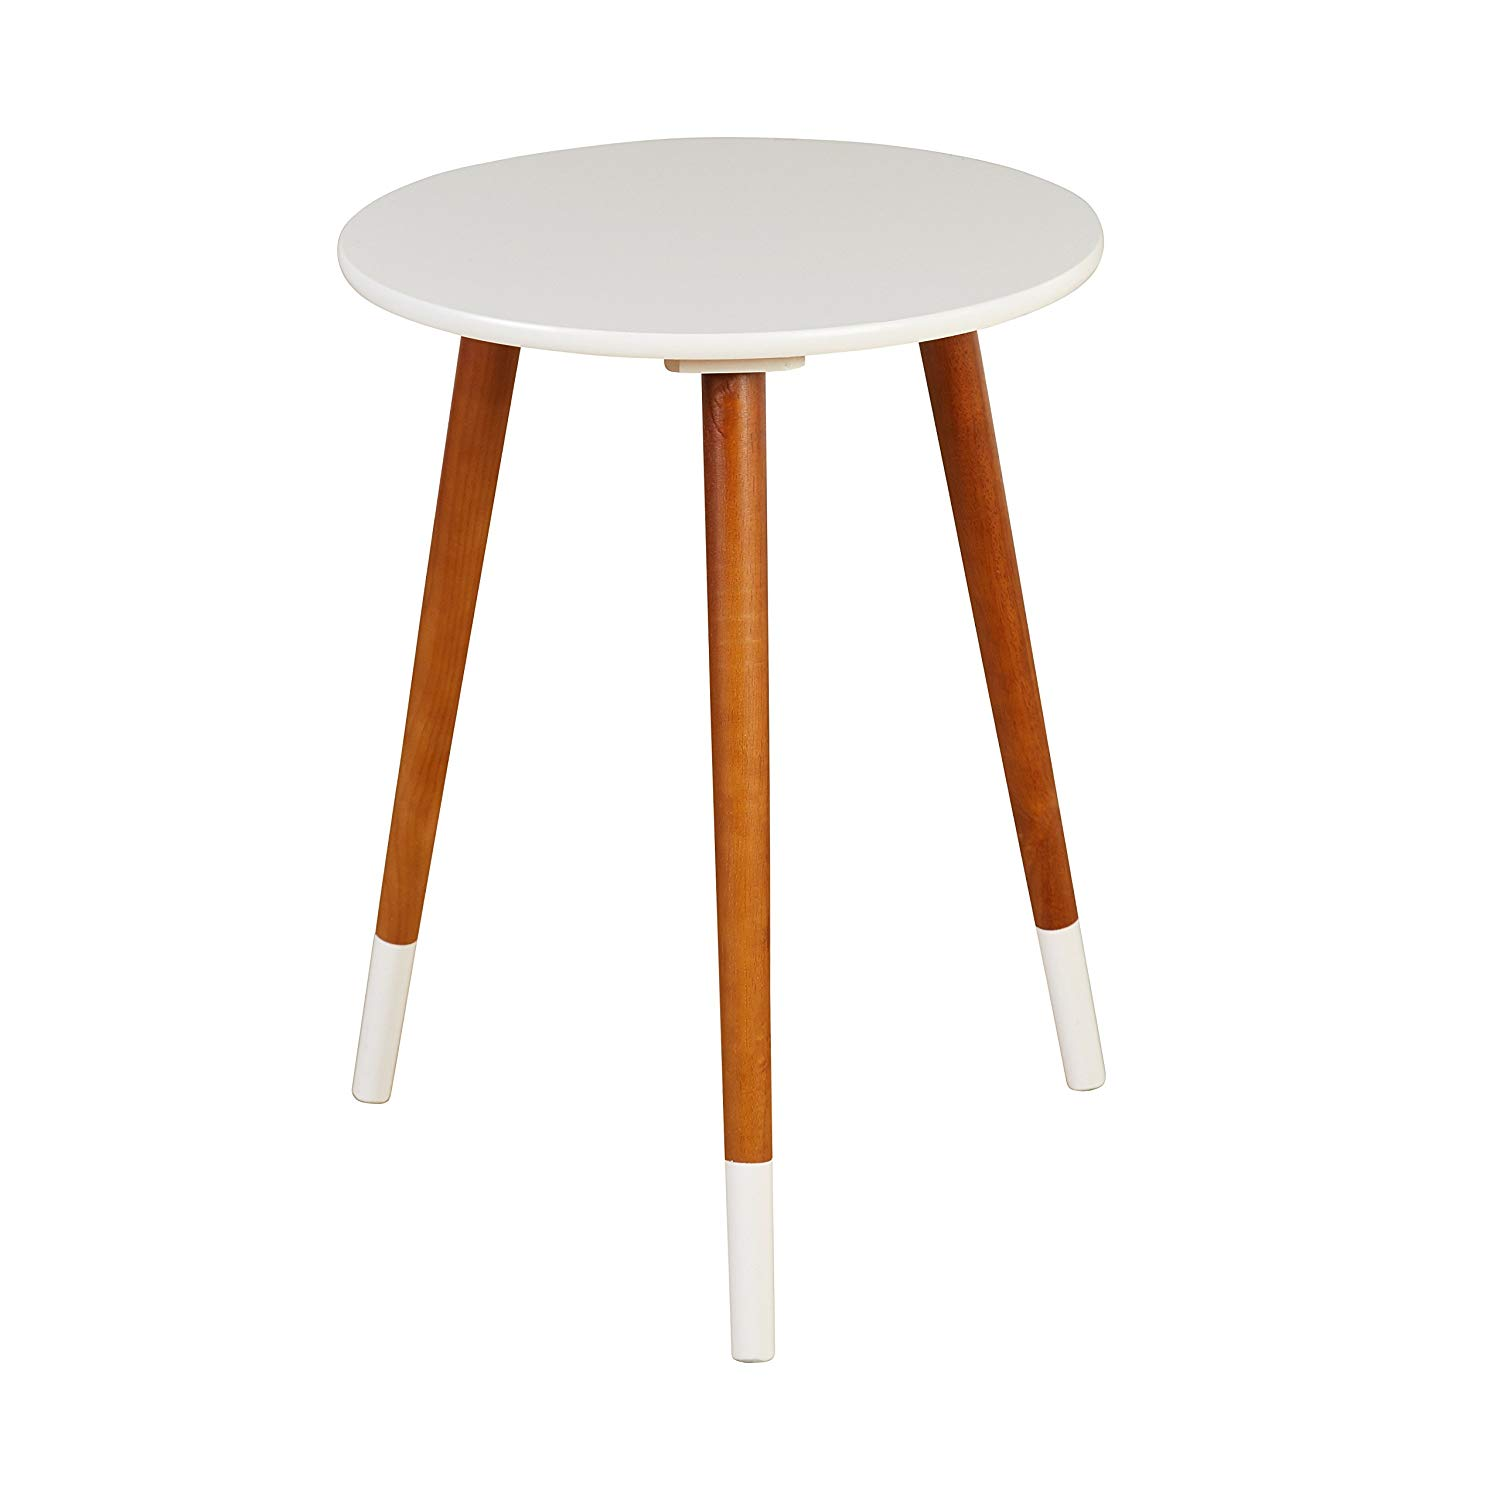 target marketing systems livia collection ultra modern round end table with splayed leg finish white wood neelan accent kitchen dining indoor door mats home goods garden umbrella